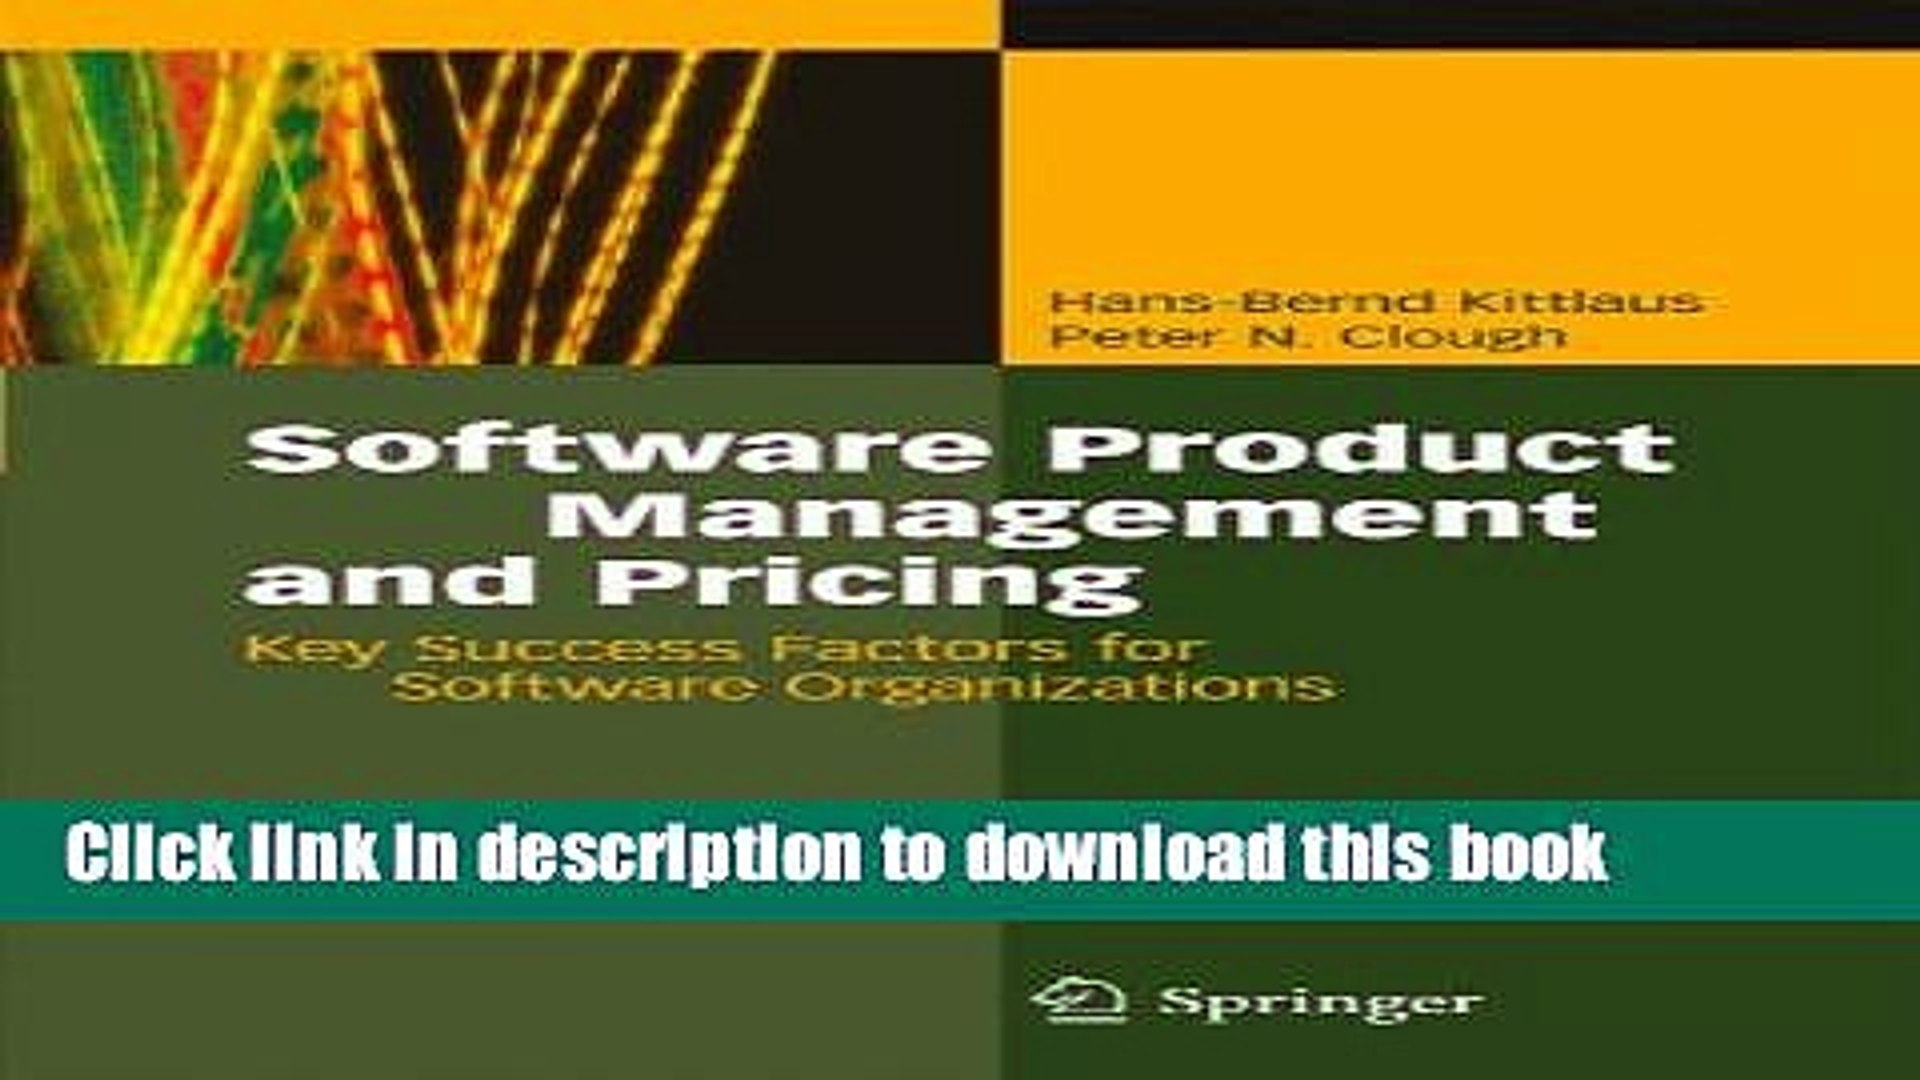 Books Software Product Management and Pricing: Key Success Factors for Software Organizations Free